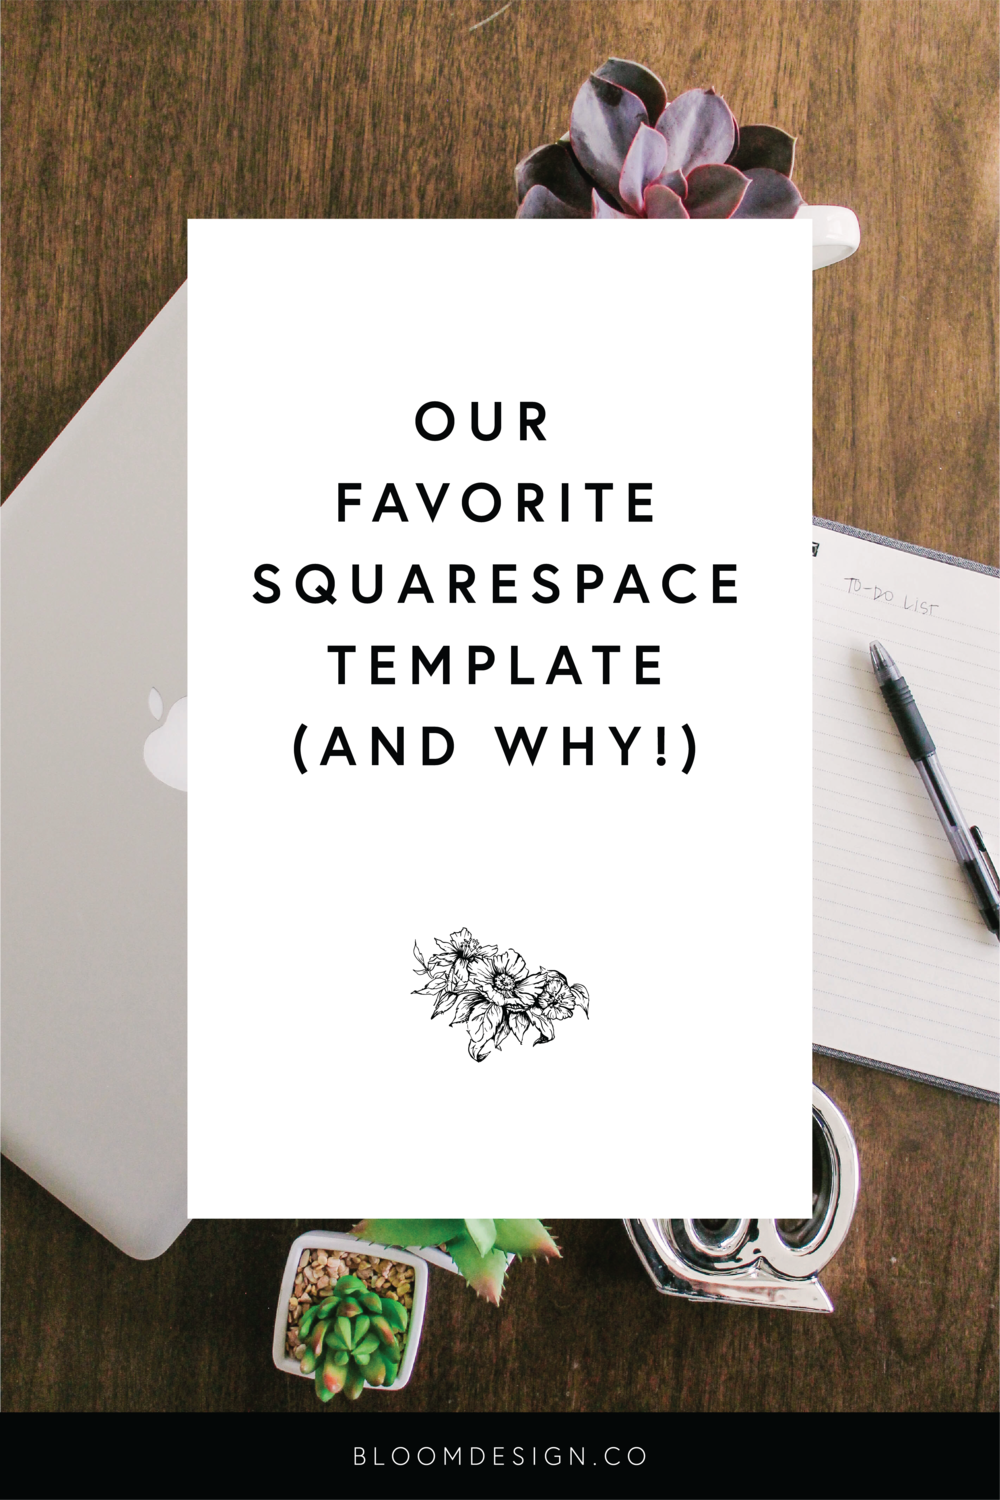 Our Favorite Squarespace Template!